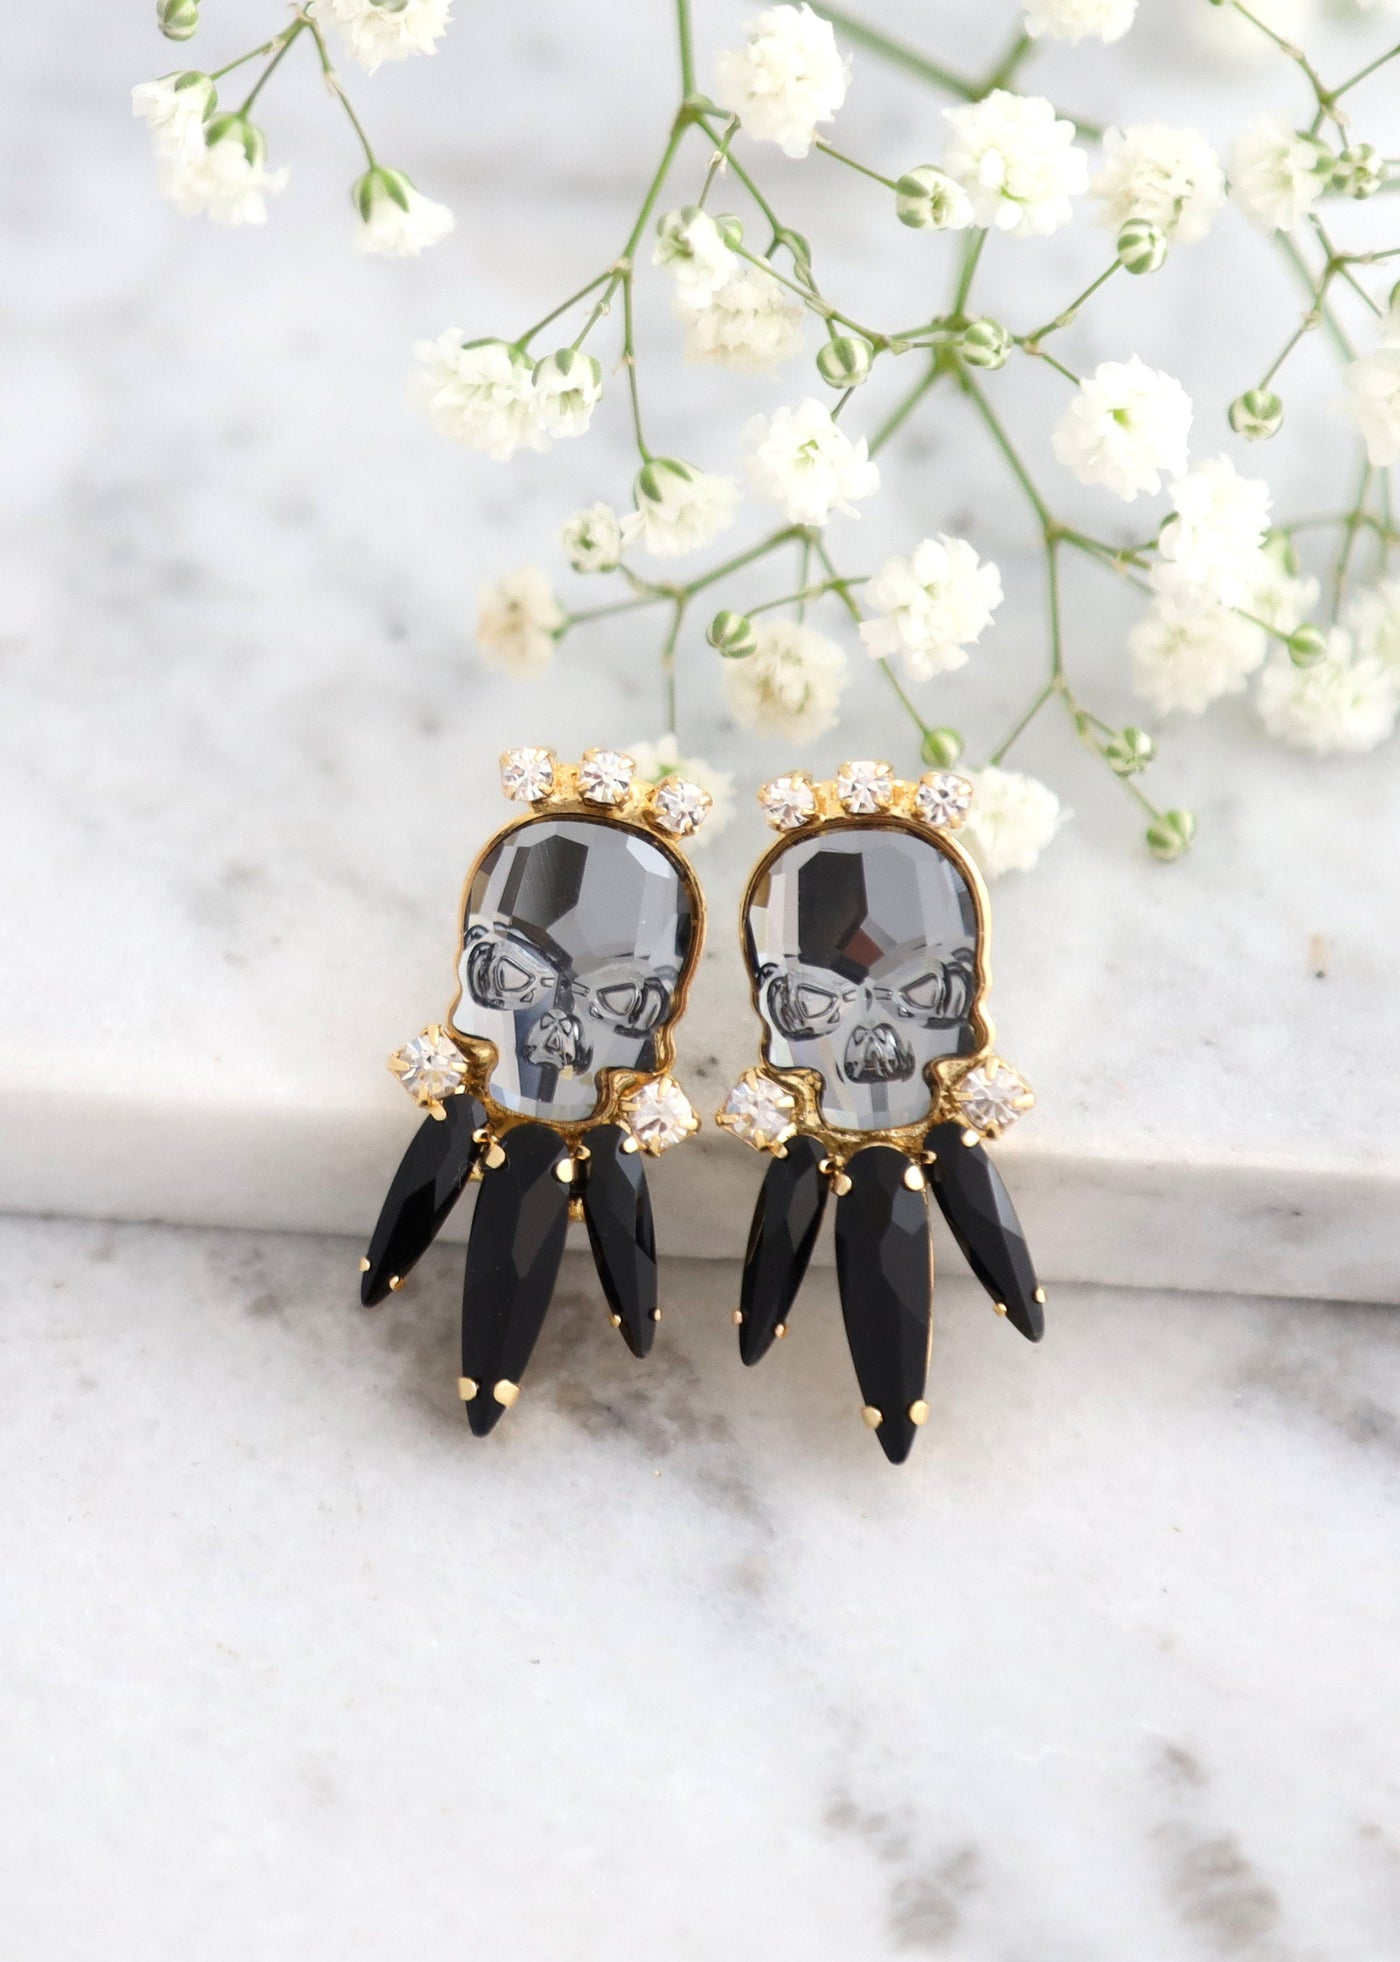 Black Skull Earrings, Skull Earrings, Sugar Skull Earrings, Rock N Roll Bride Earrings, Gift For Her, Gothic Bride Jewelry, Crystal Earrings